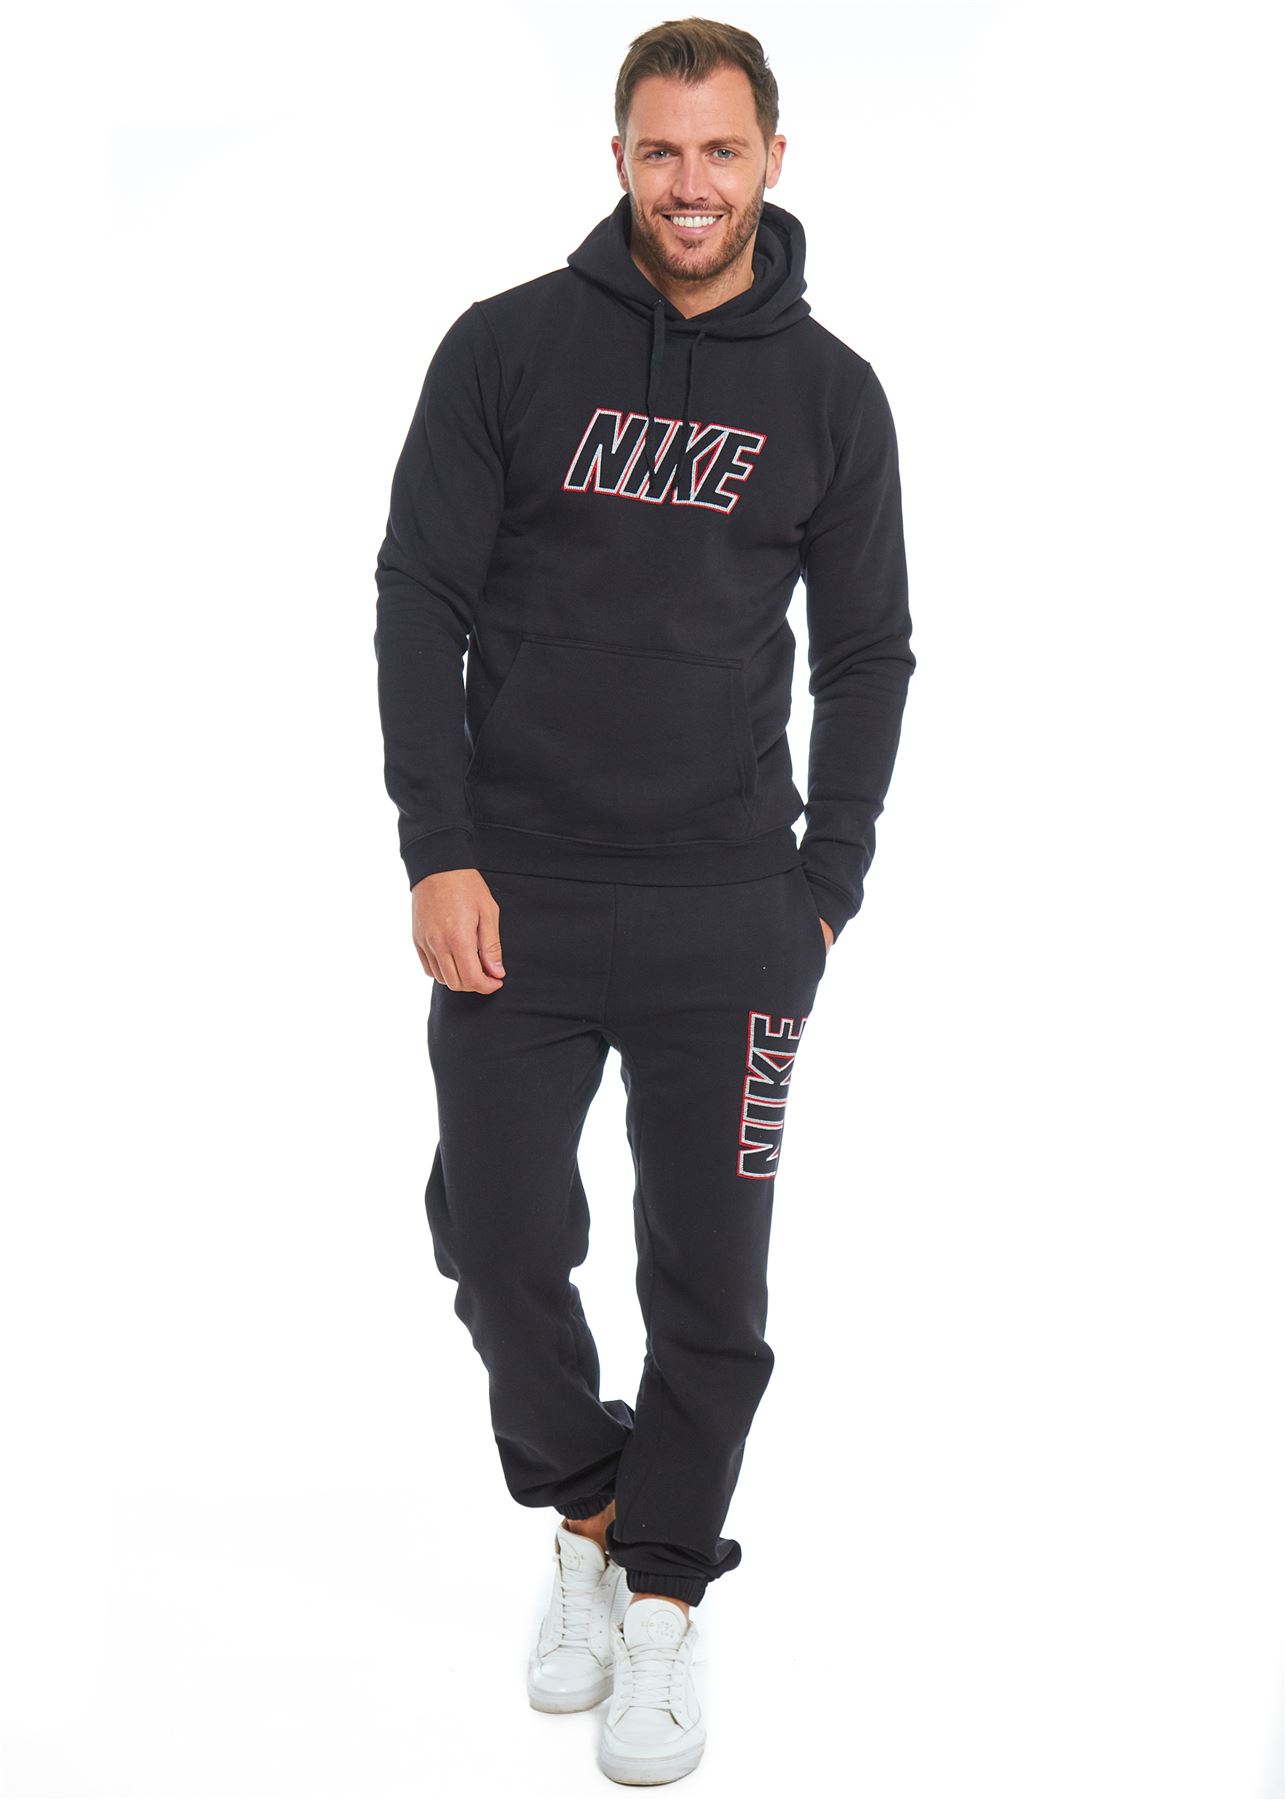 Shop adidas tracksuits, track pants, and jackets for men and women. Browse a variety of colors of tracksuits at sofltappreciate.tk